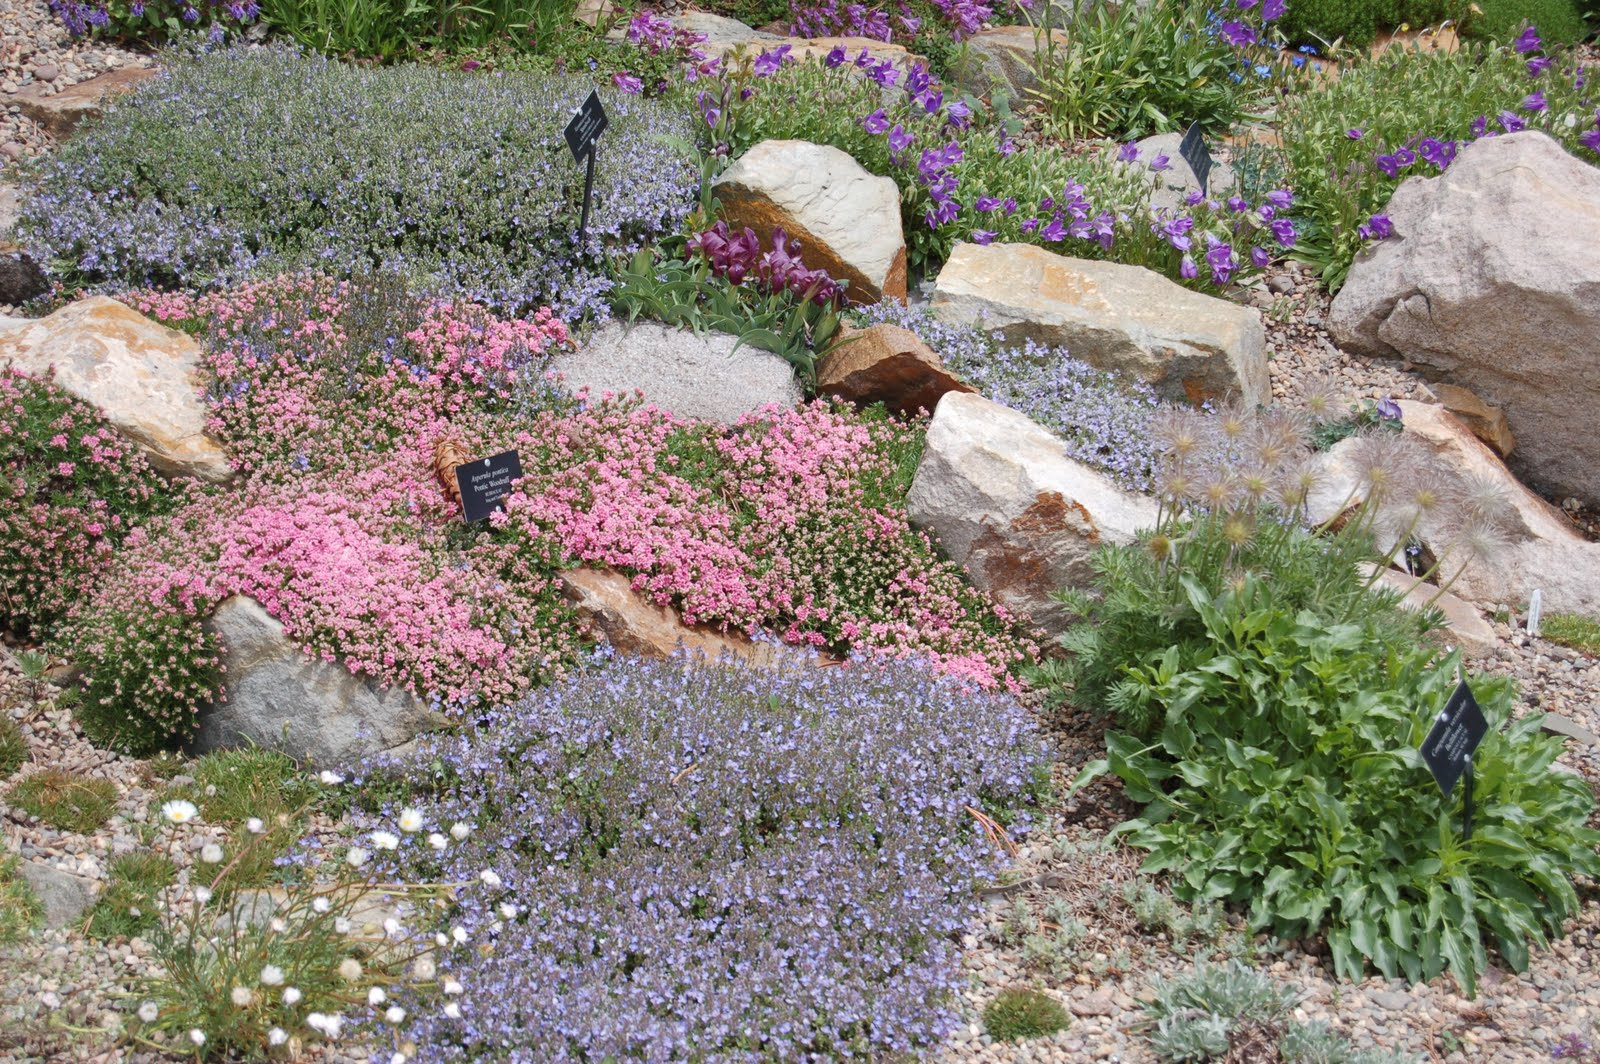 jo jones traveling lady betty ford alpine garden. Cars Review. Best American Auto & Cars Review